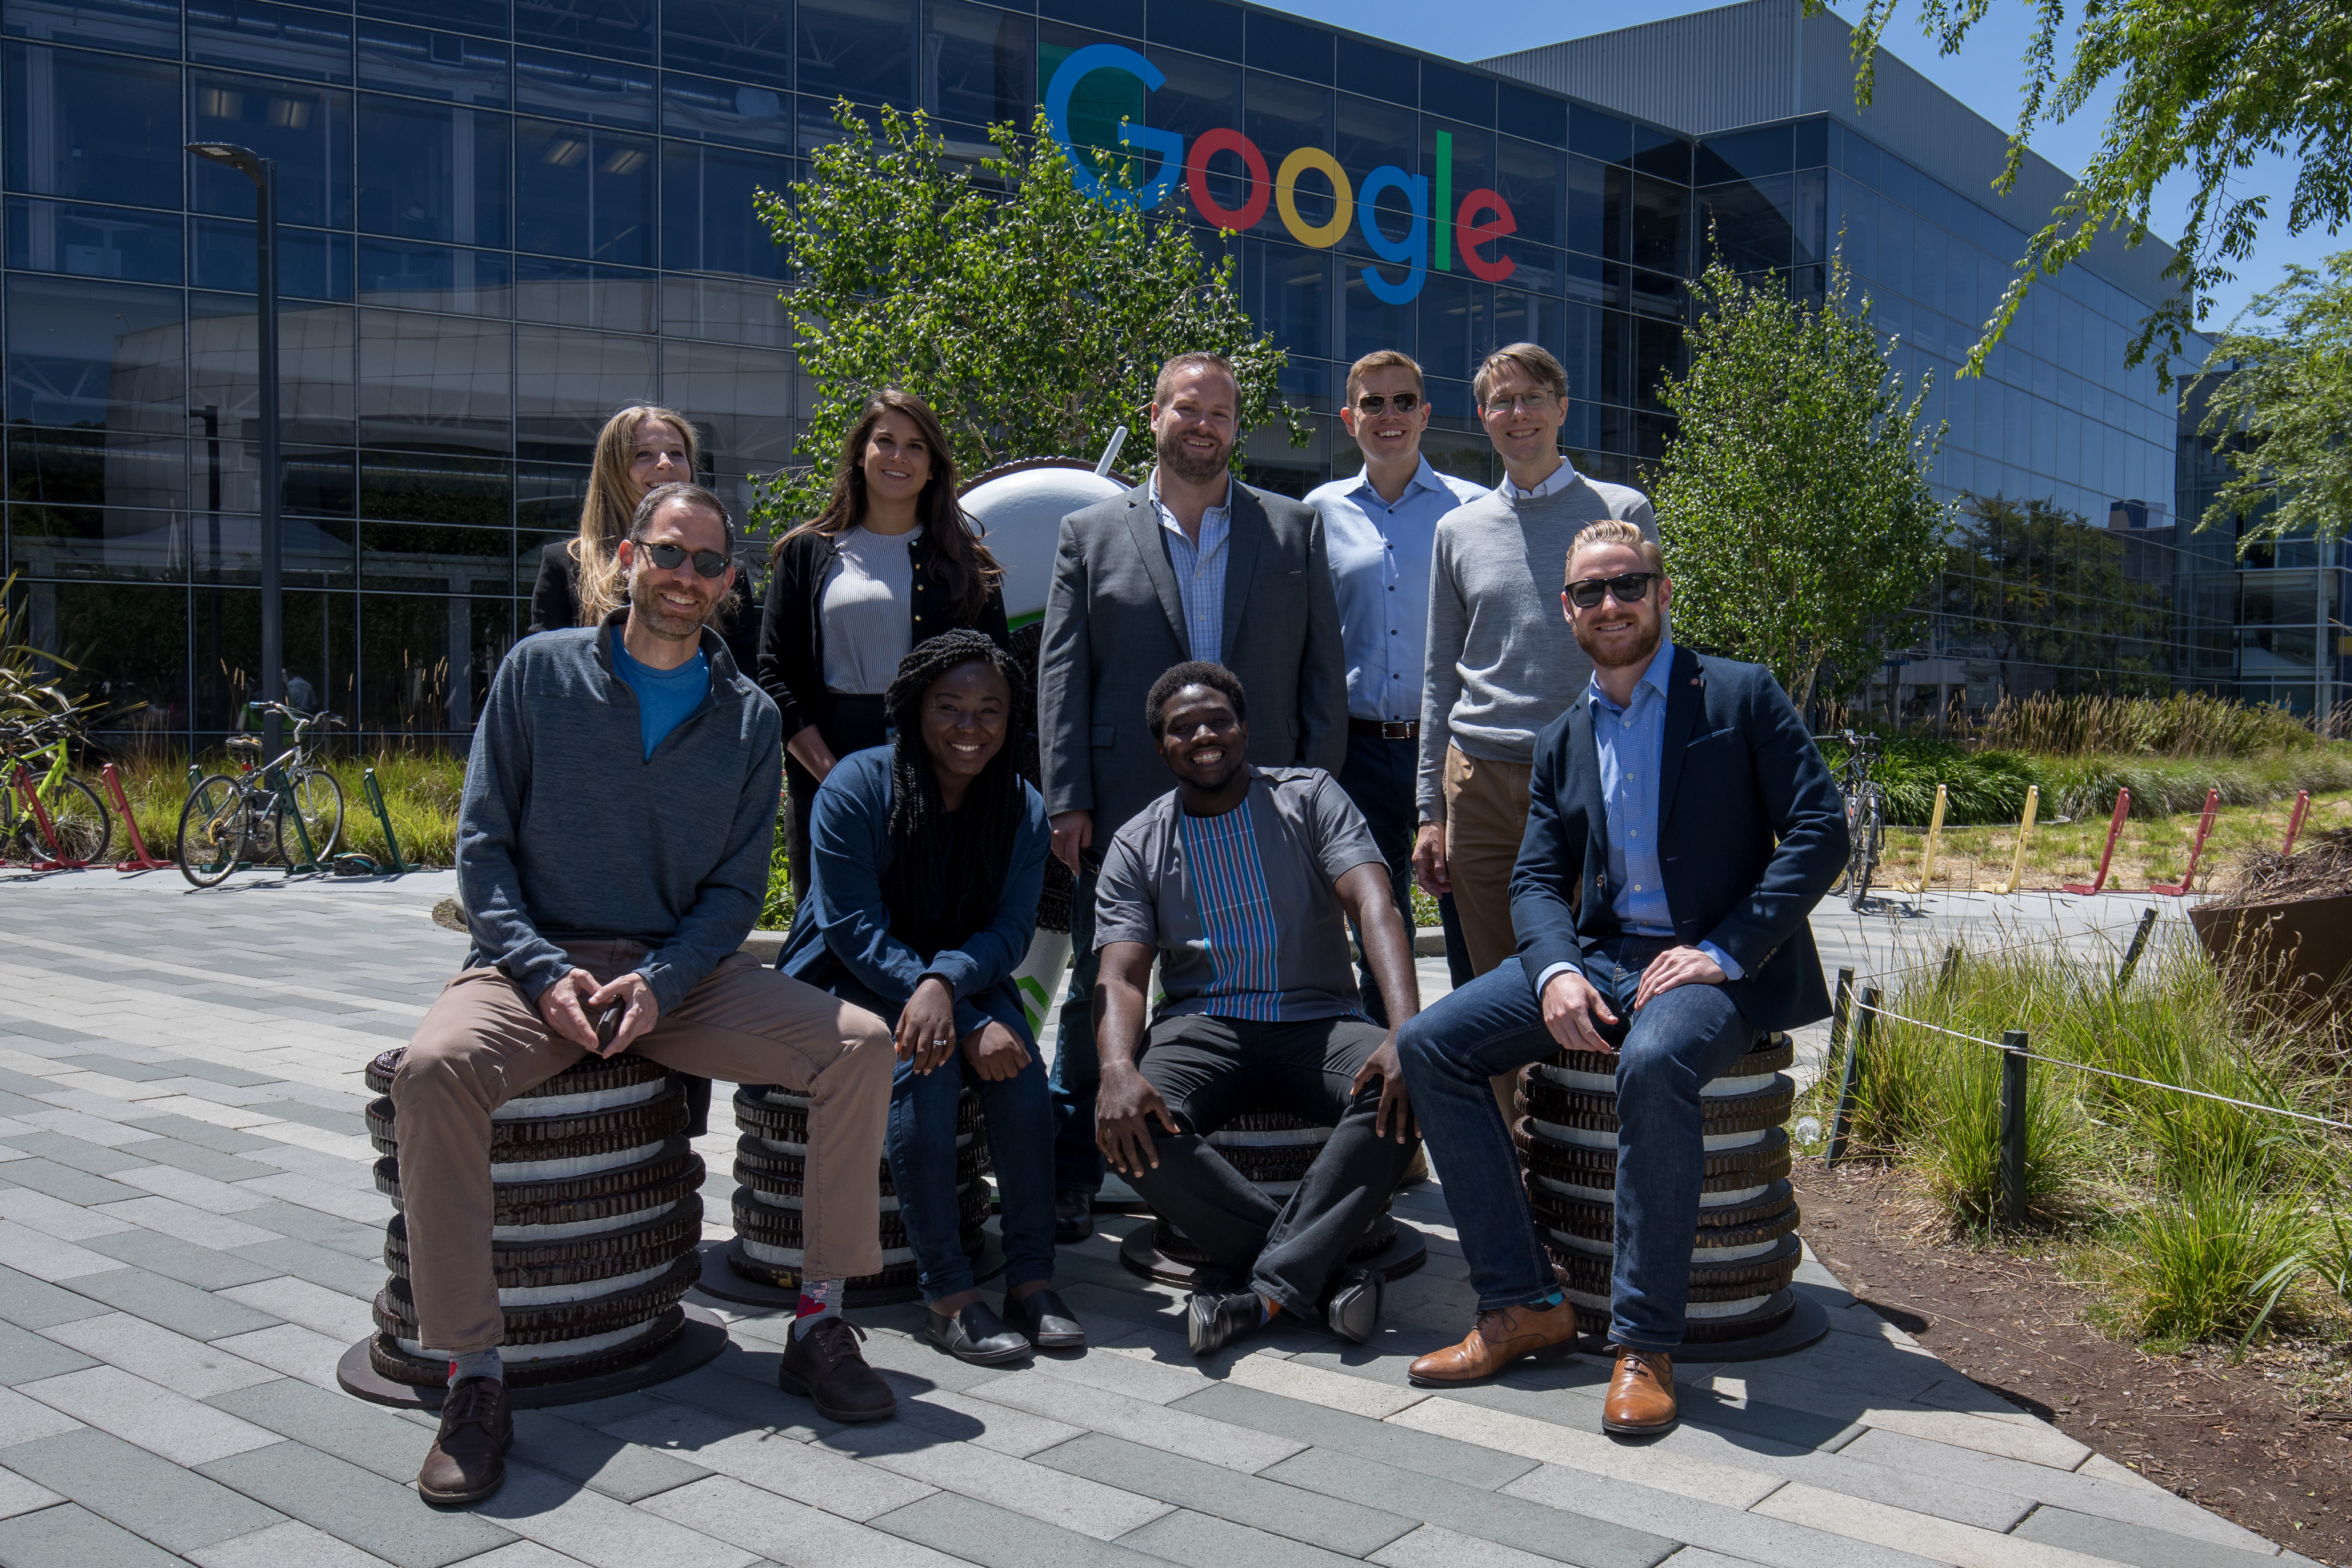 ICC Winners Small Business Video Competition Google Hq 2